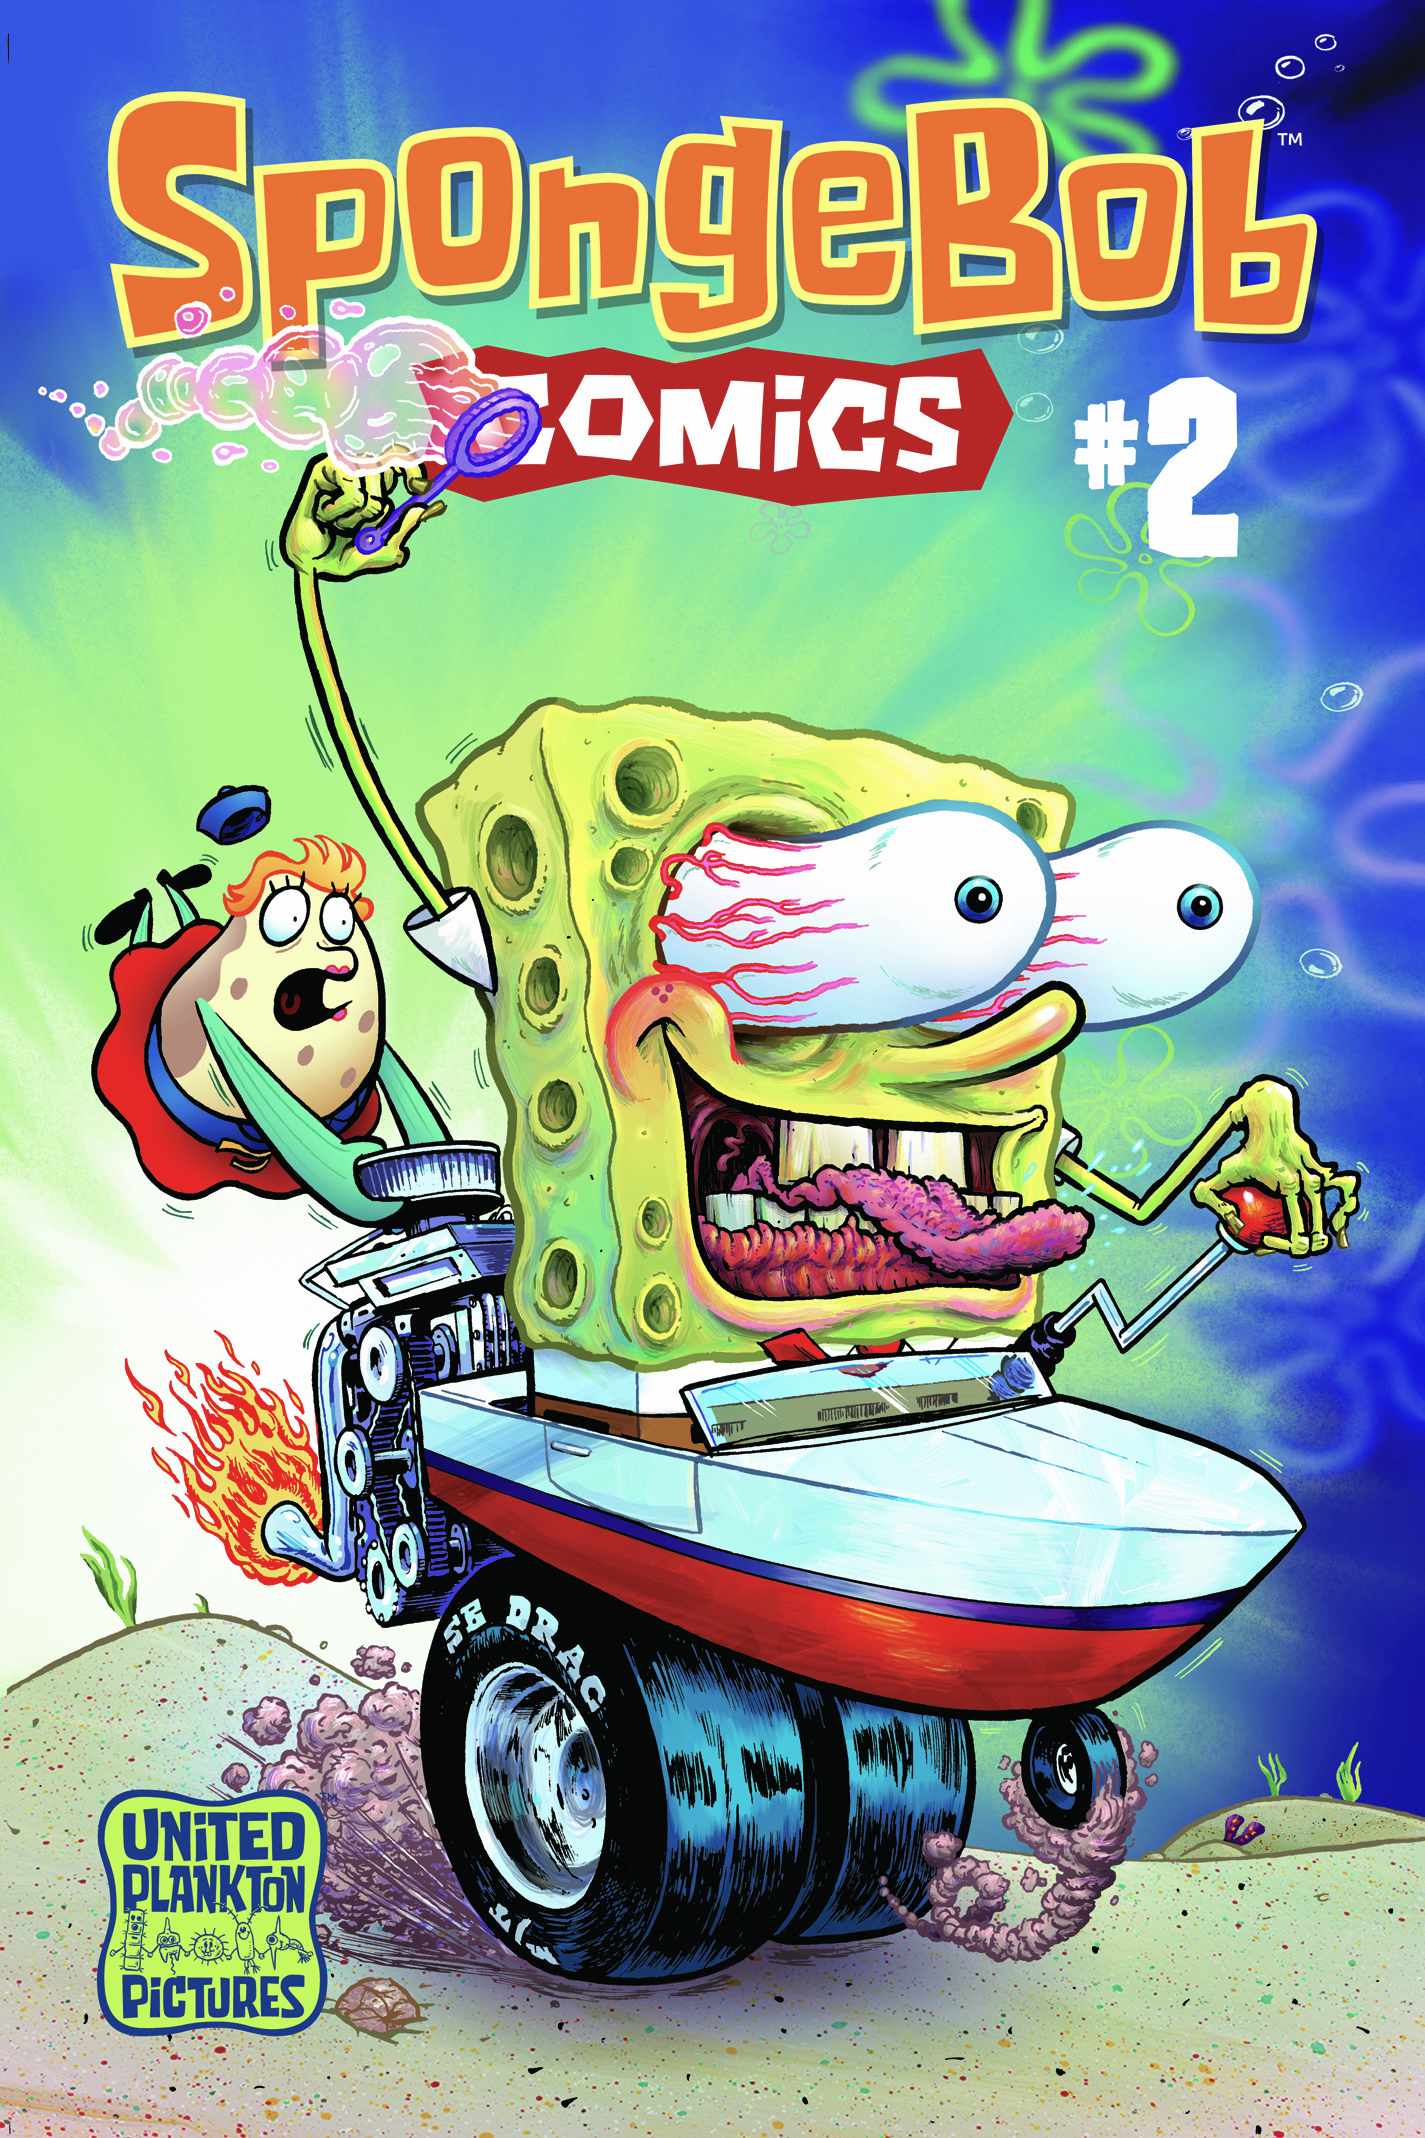 spongebob comics no 2 edit - Spongbob 2